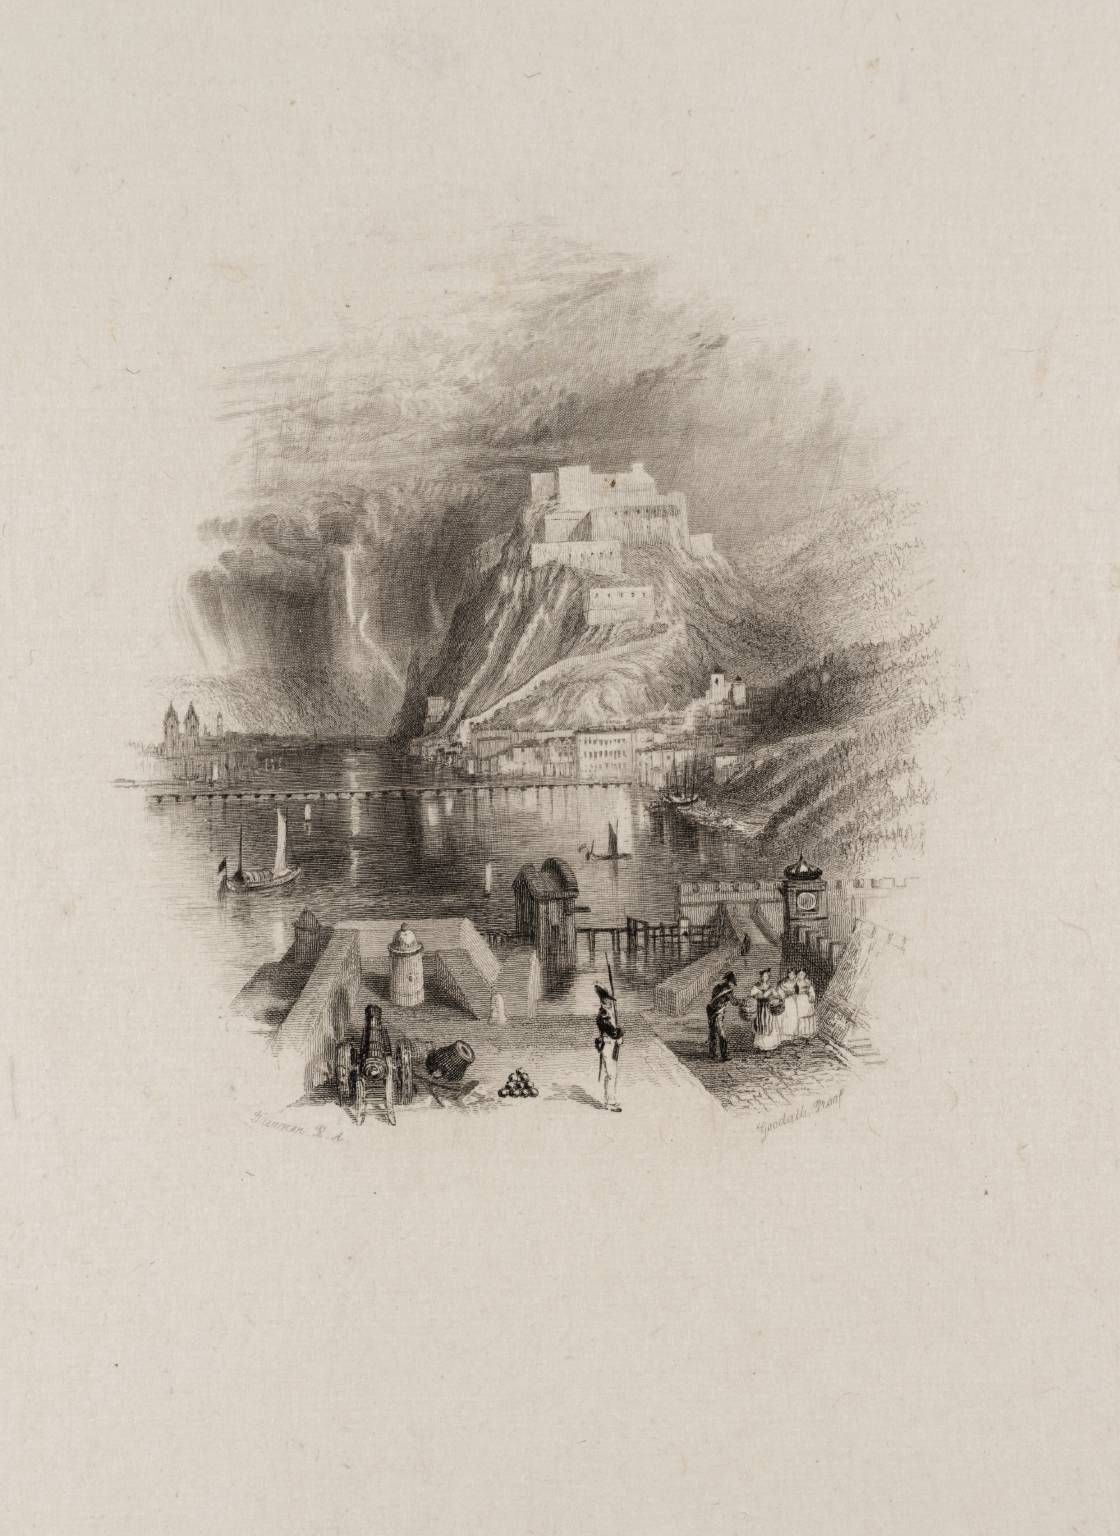 After Joseph Mallord William Turner, Ehrenbreitstein, engraved by Edward Goodall published 1837